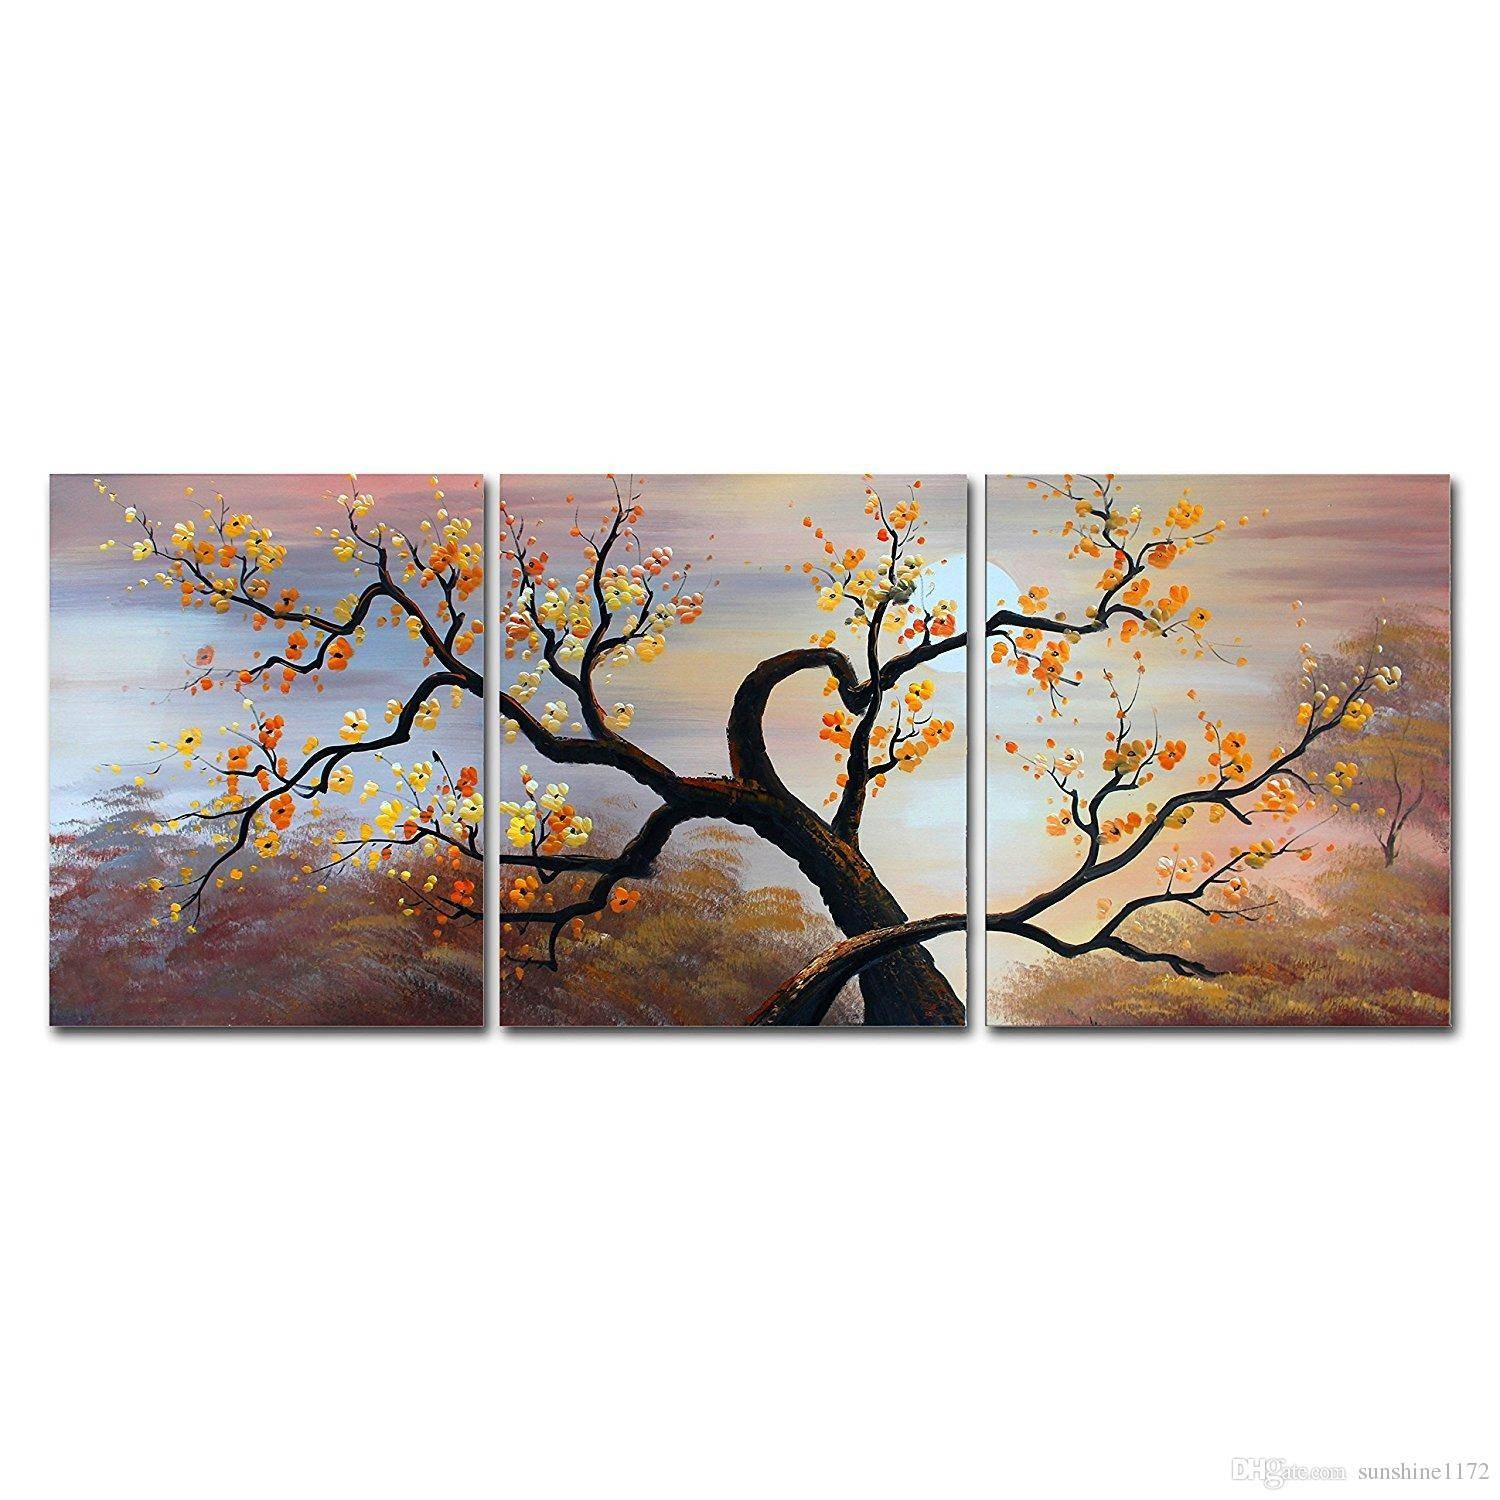 Cherry Blossom Canvas Wall Art Home Decoration Large Landscape Oil Pertaining To Most Current Dinosaur Canvas Wall Art (View 4 of 15)